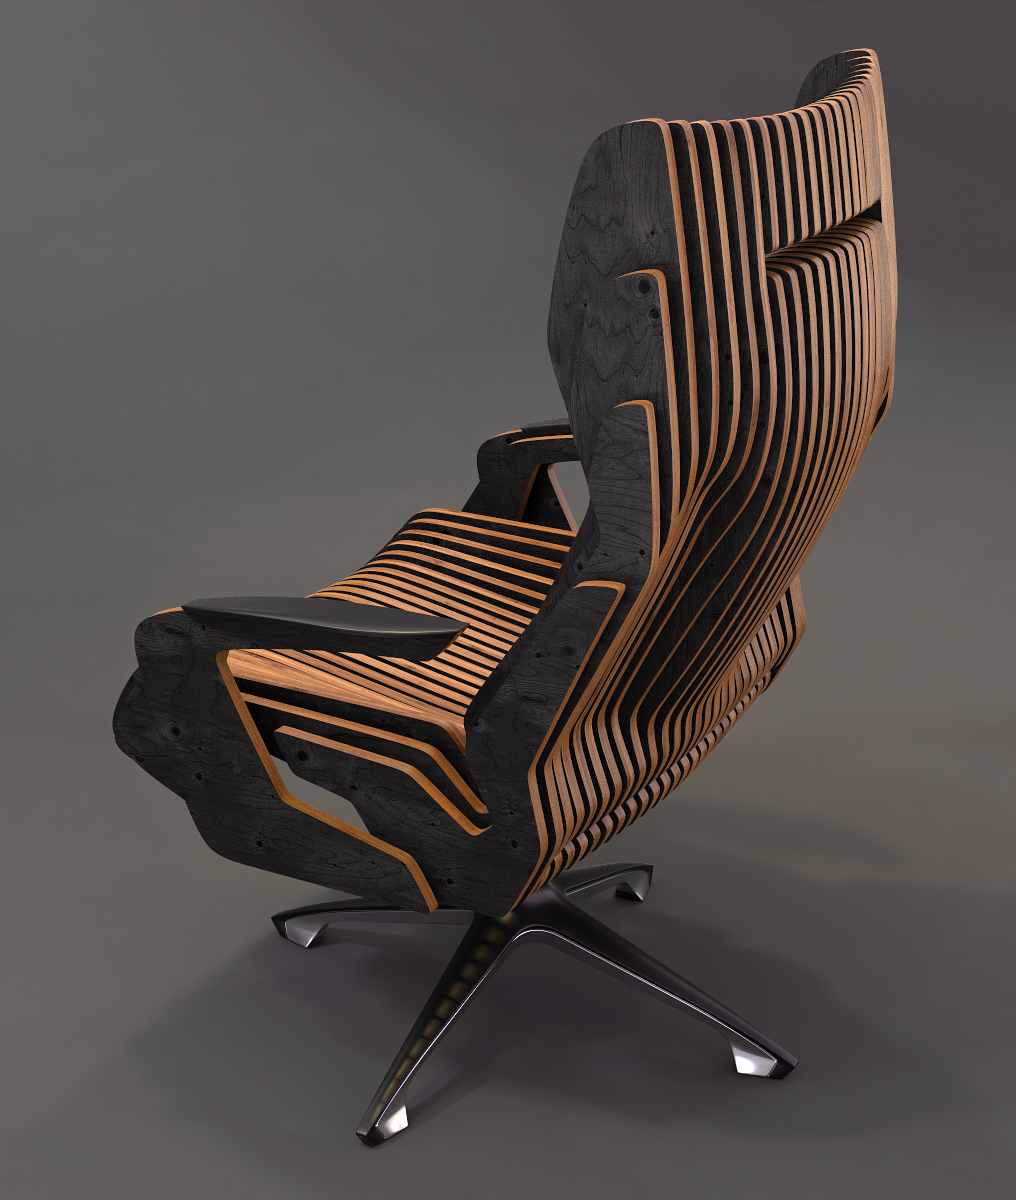 parametric chair,chair,creative chair,parametric concept,concept chair